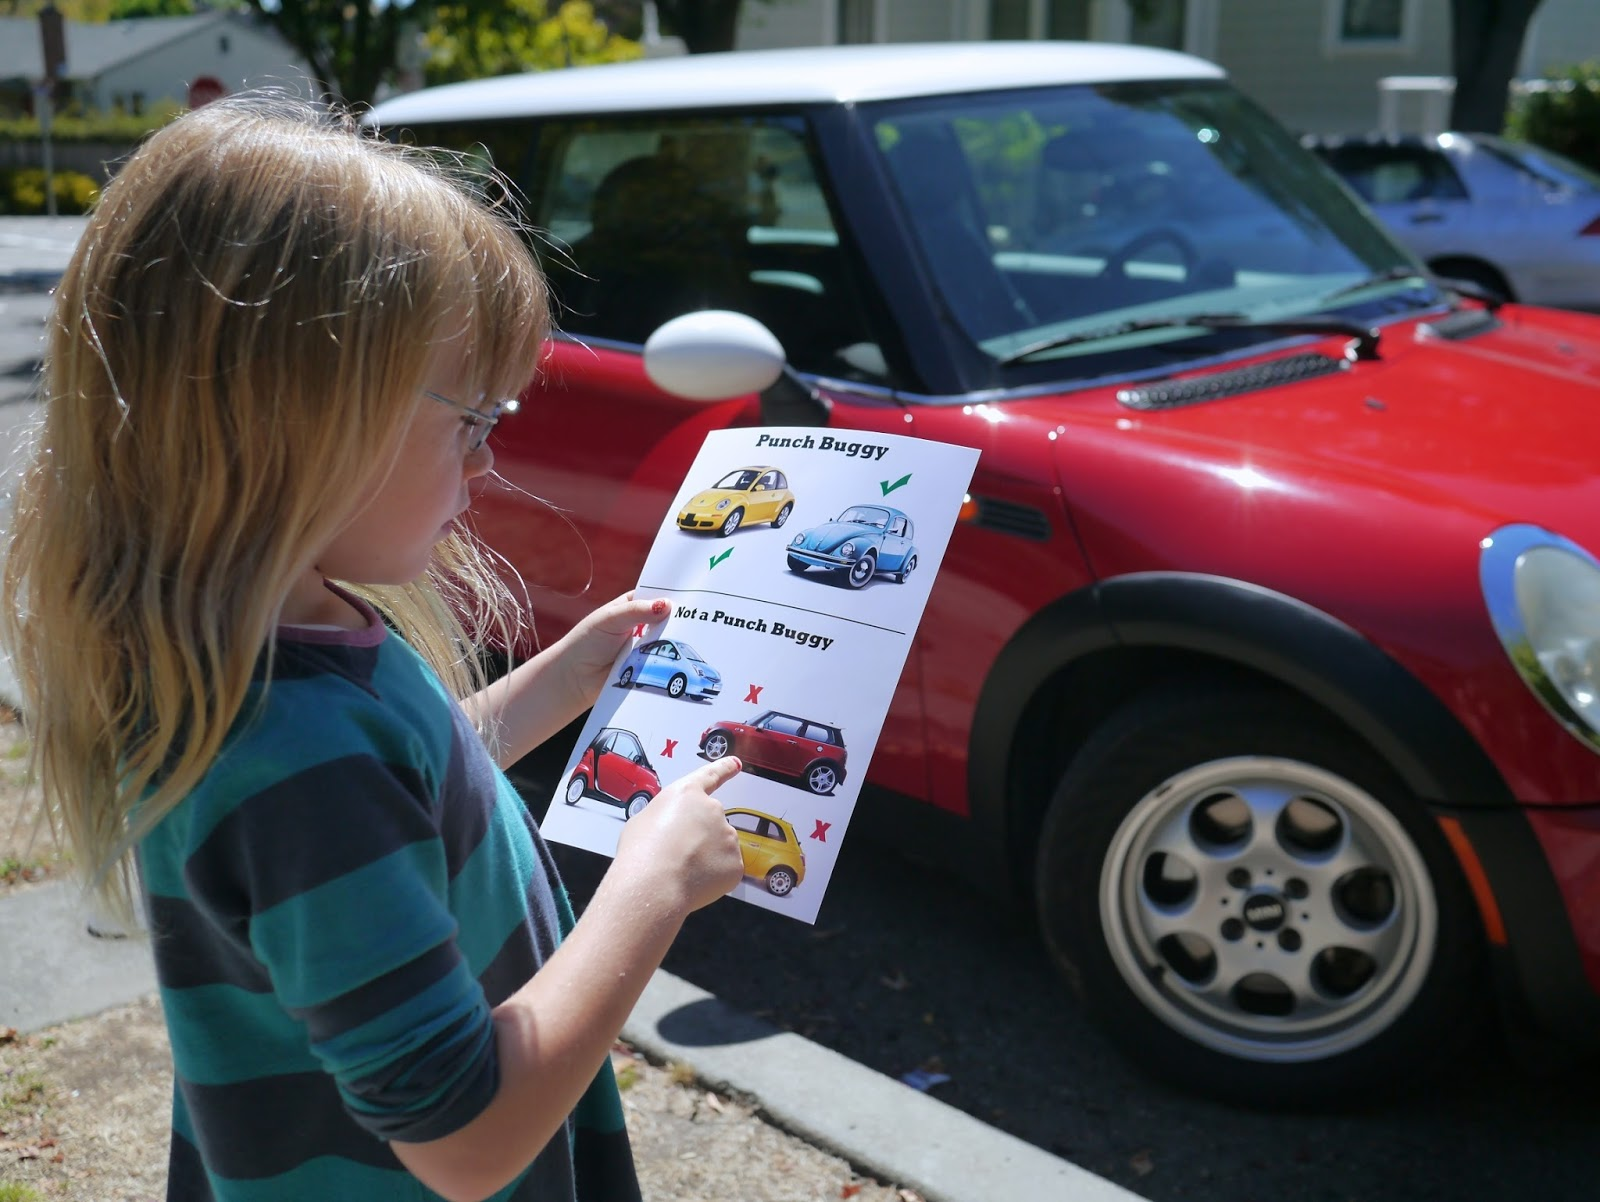 Little Hiccups: Punch Buggy Field Guide